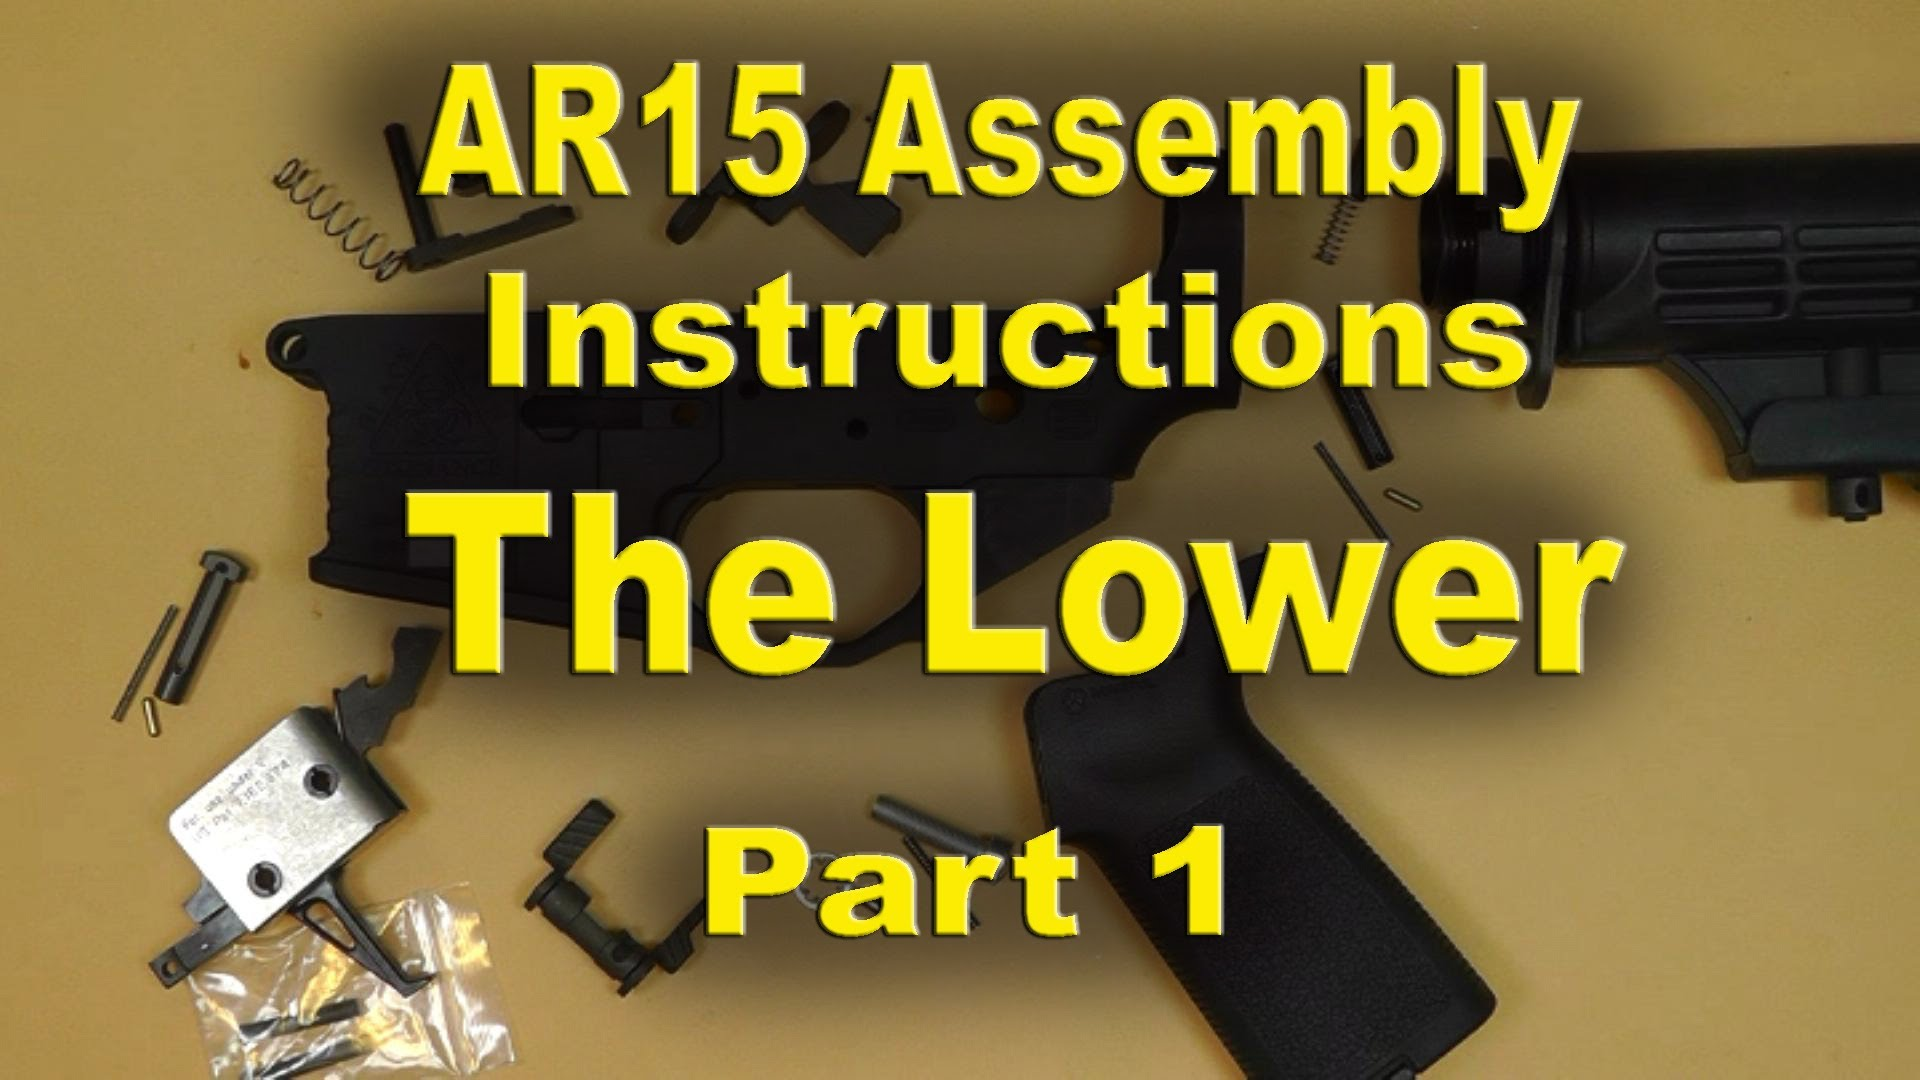 Black Rain Ordnance AR15 Assembly Instructions PART 1 (The Lower)